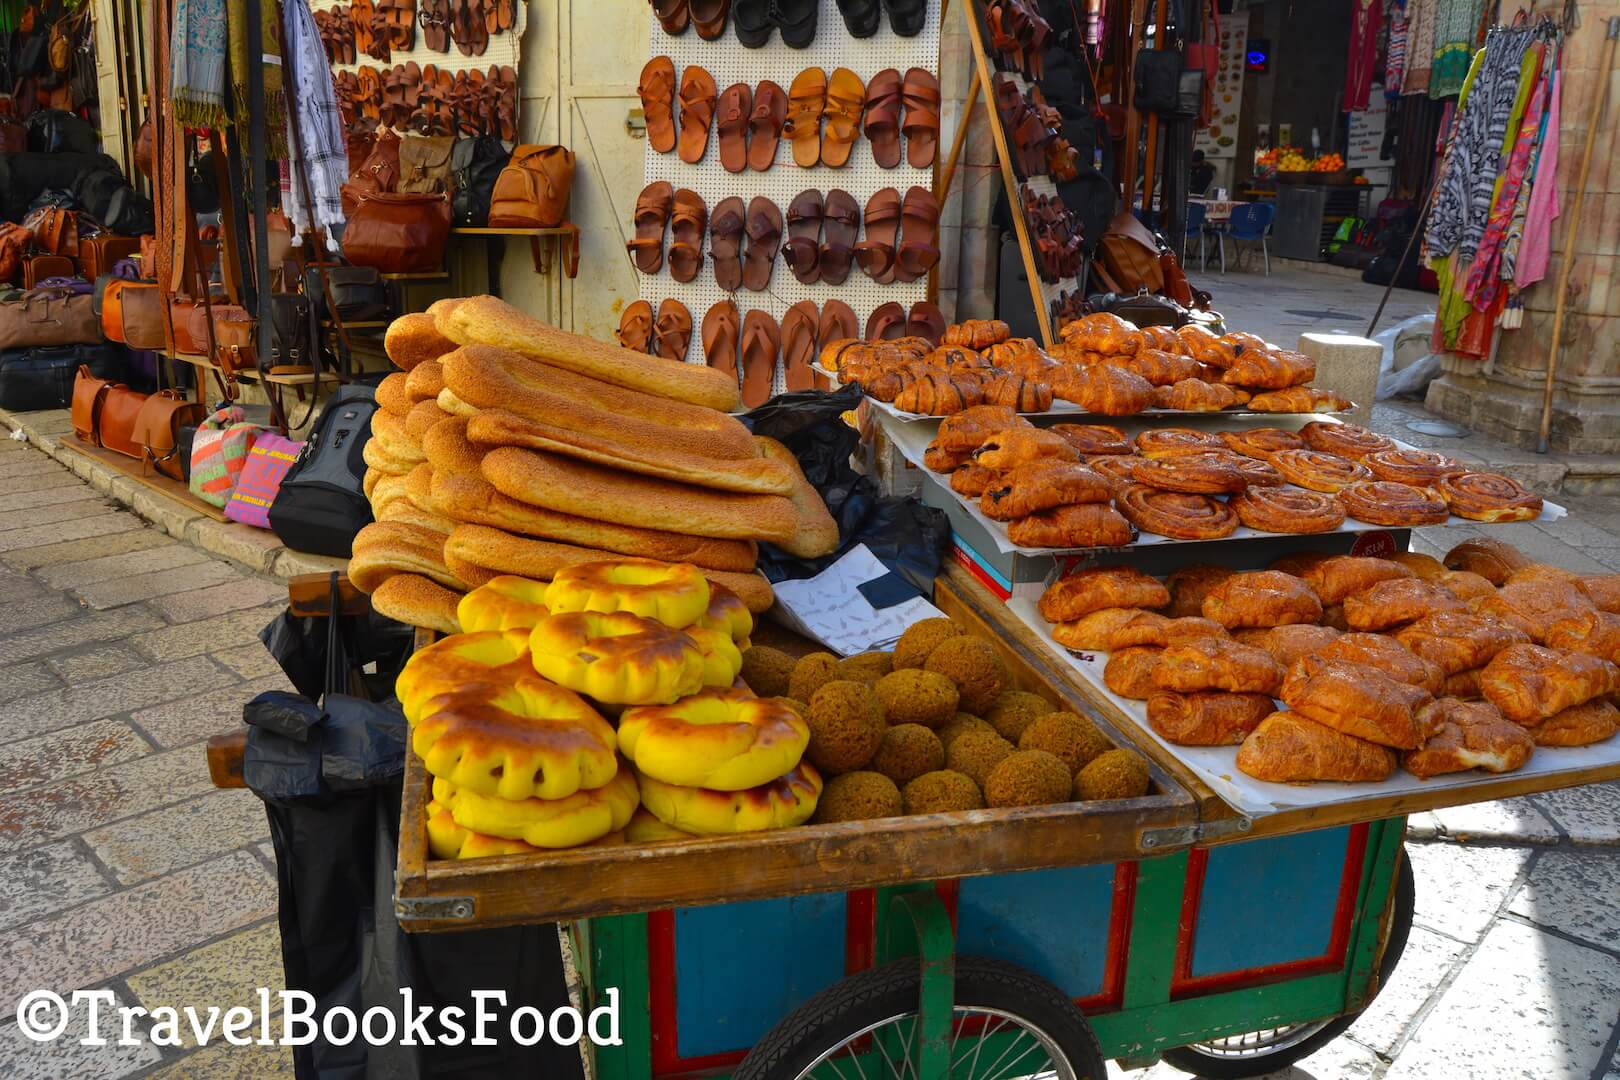 A street food cart with different types of bread and other vegetarian delicacies in Jerusalem, Israel